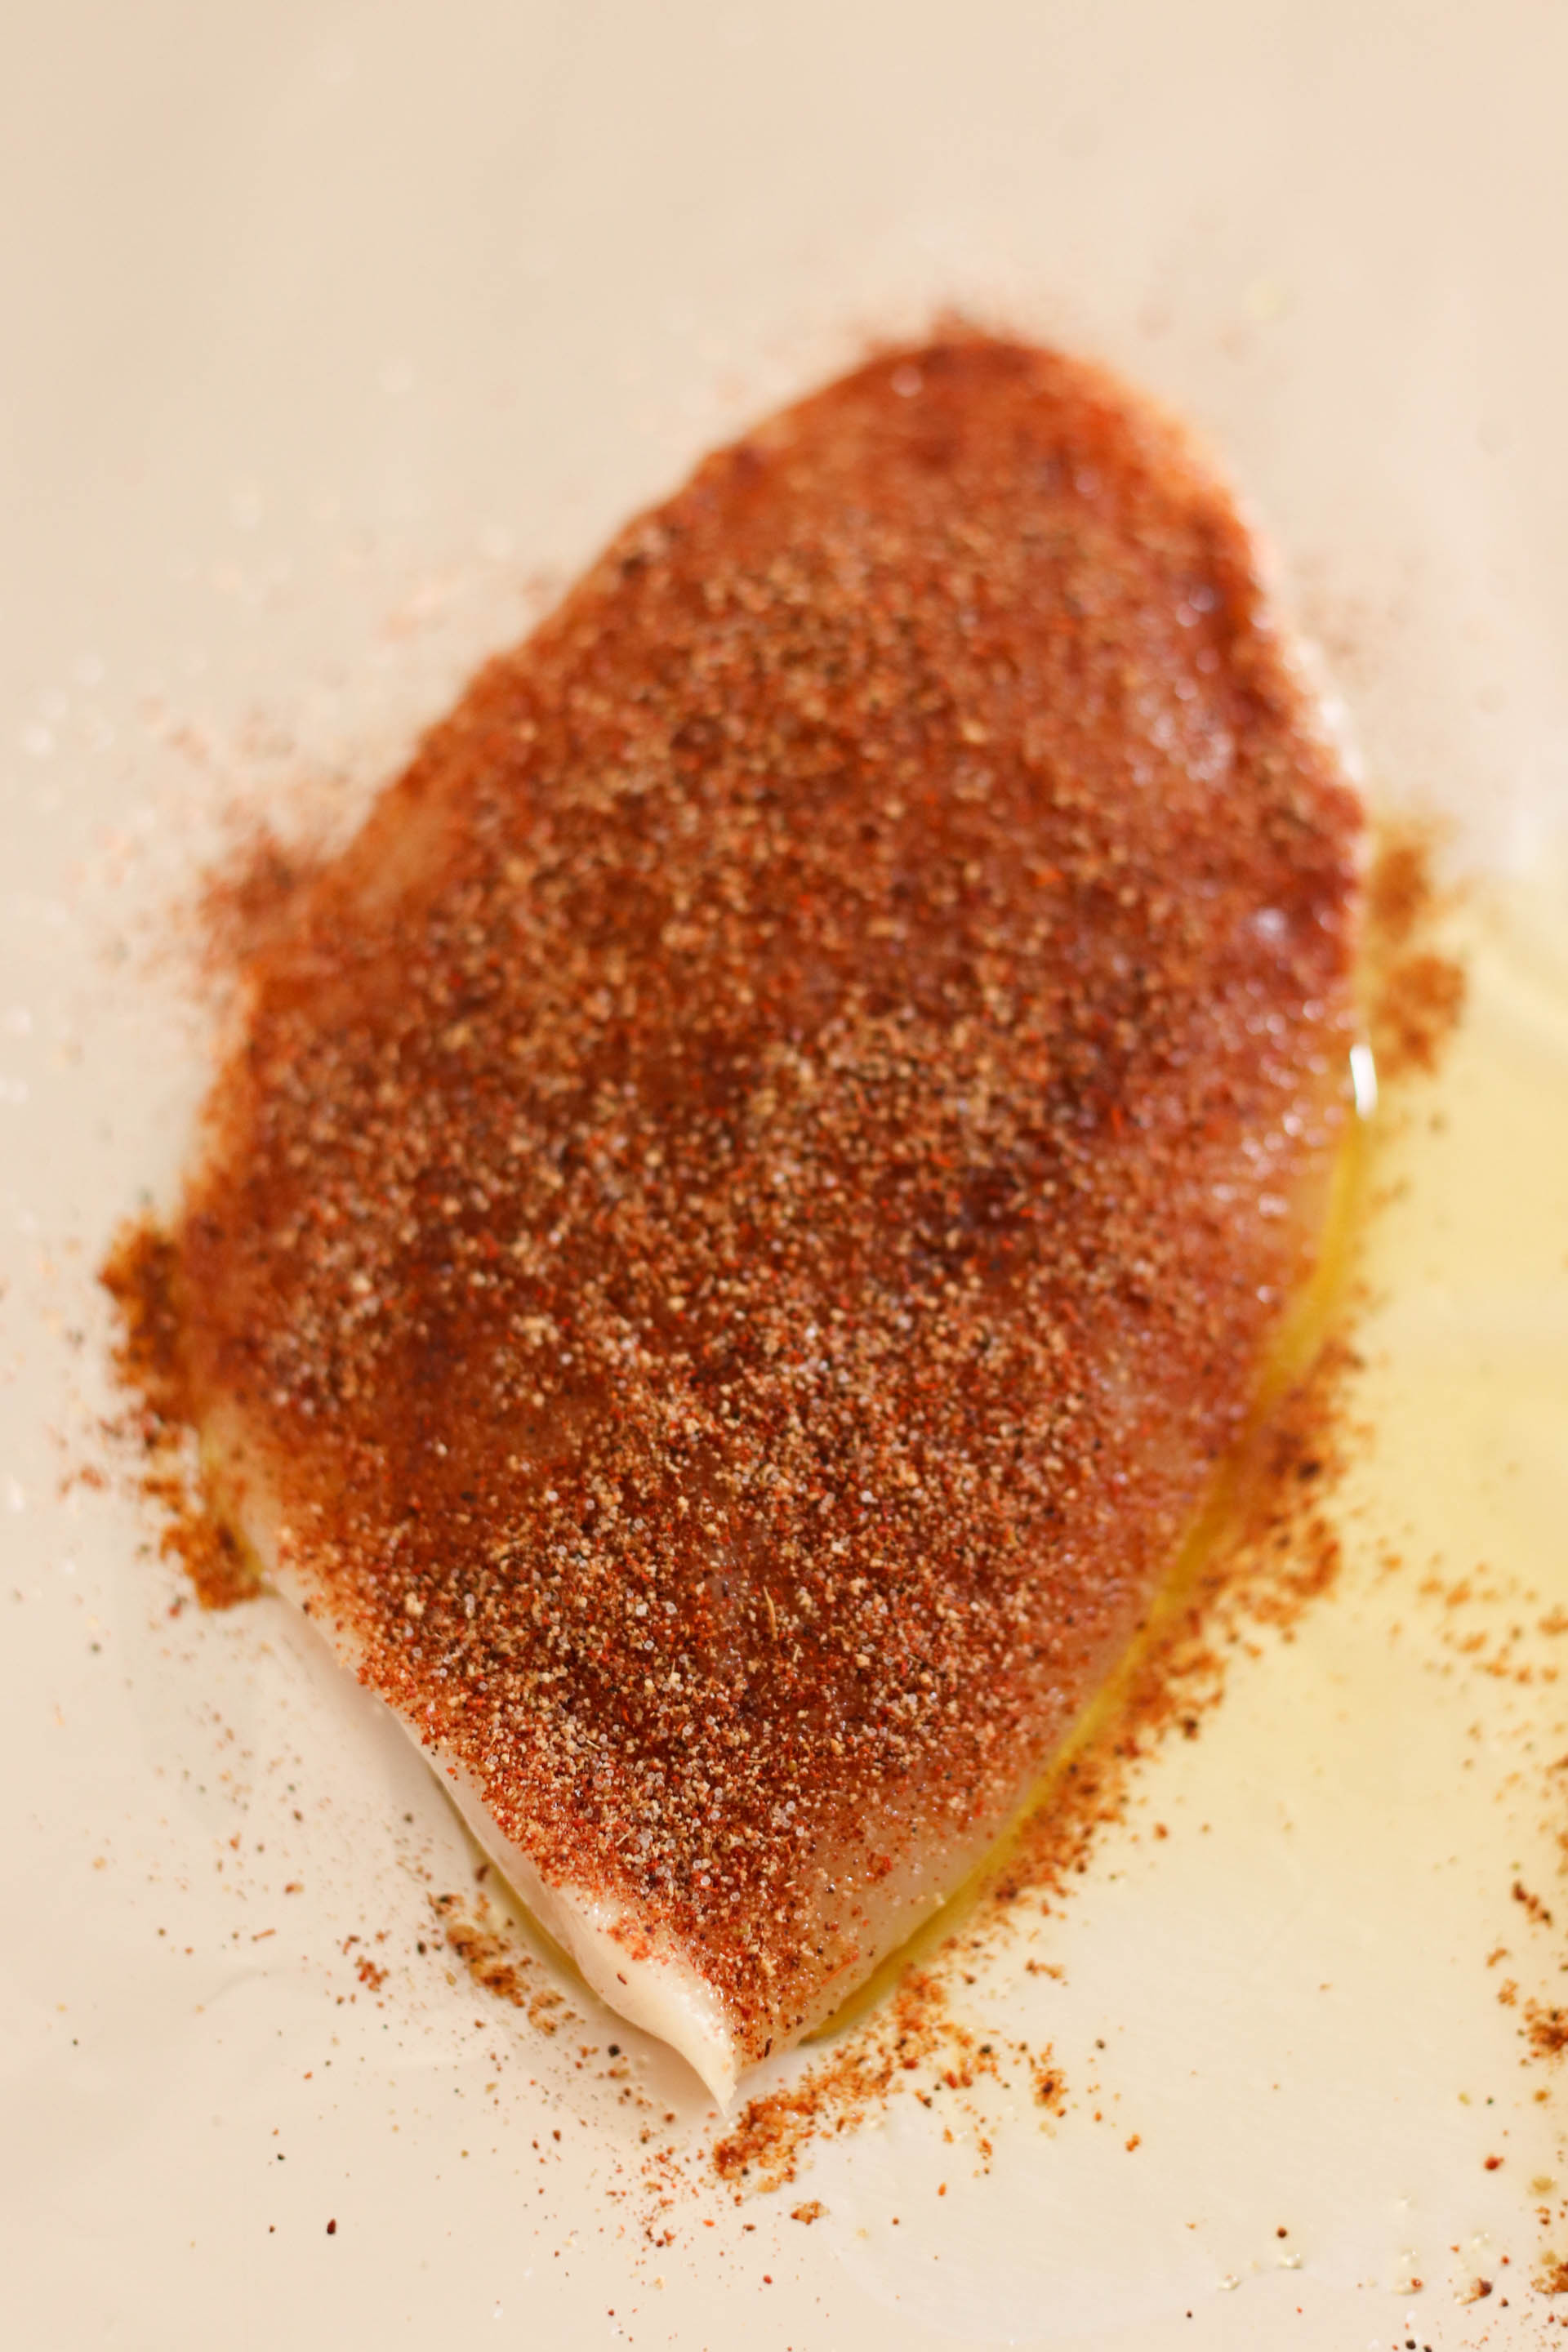 Rub spice mixture on uncooked chicken breast